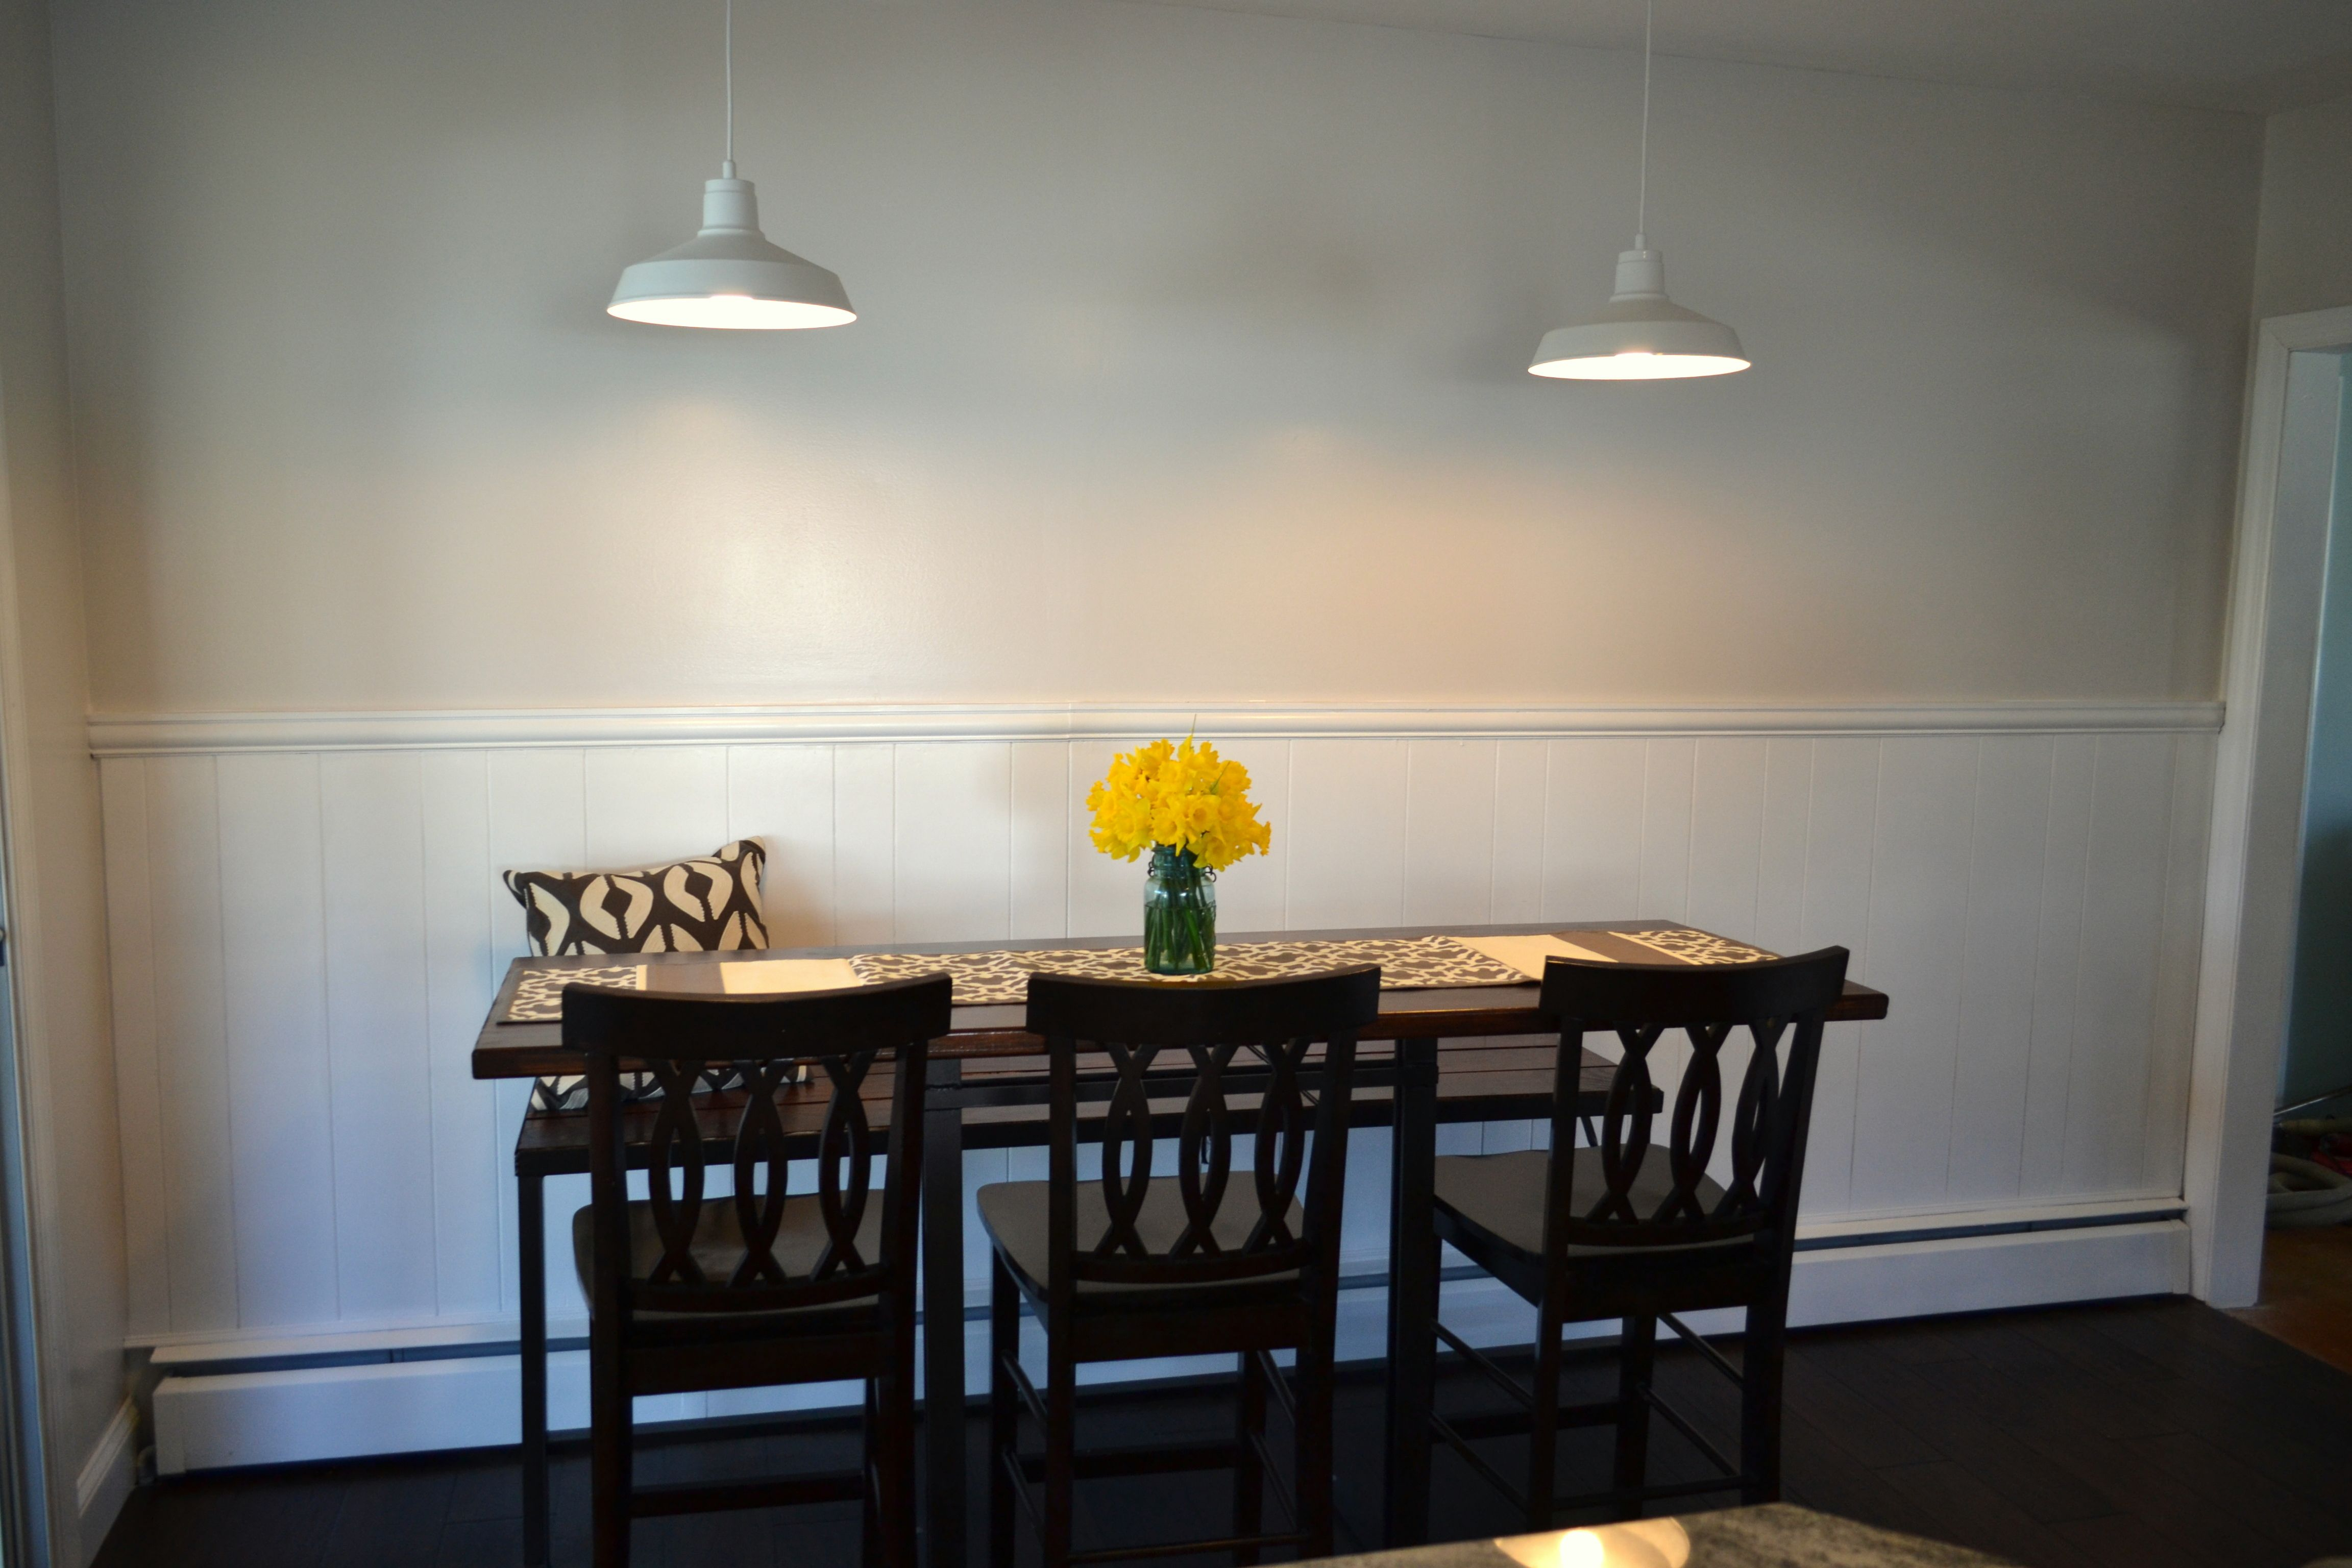 Handmade dining table with built in bench seat and white